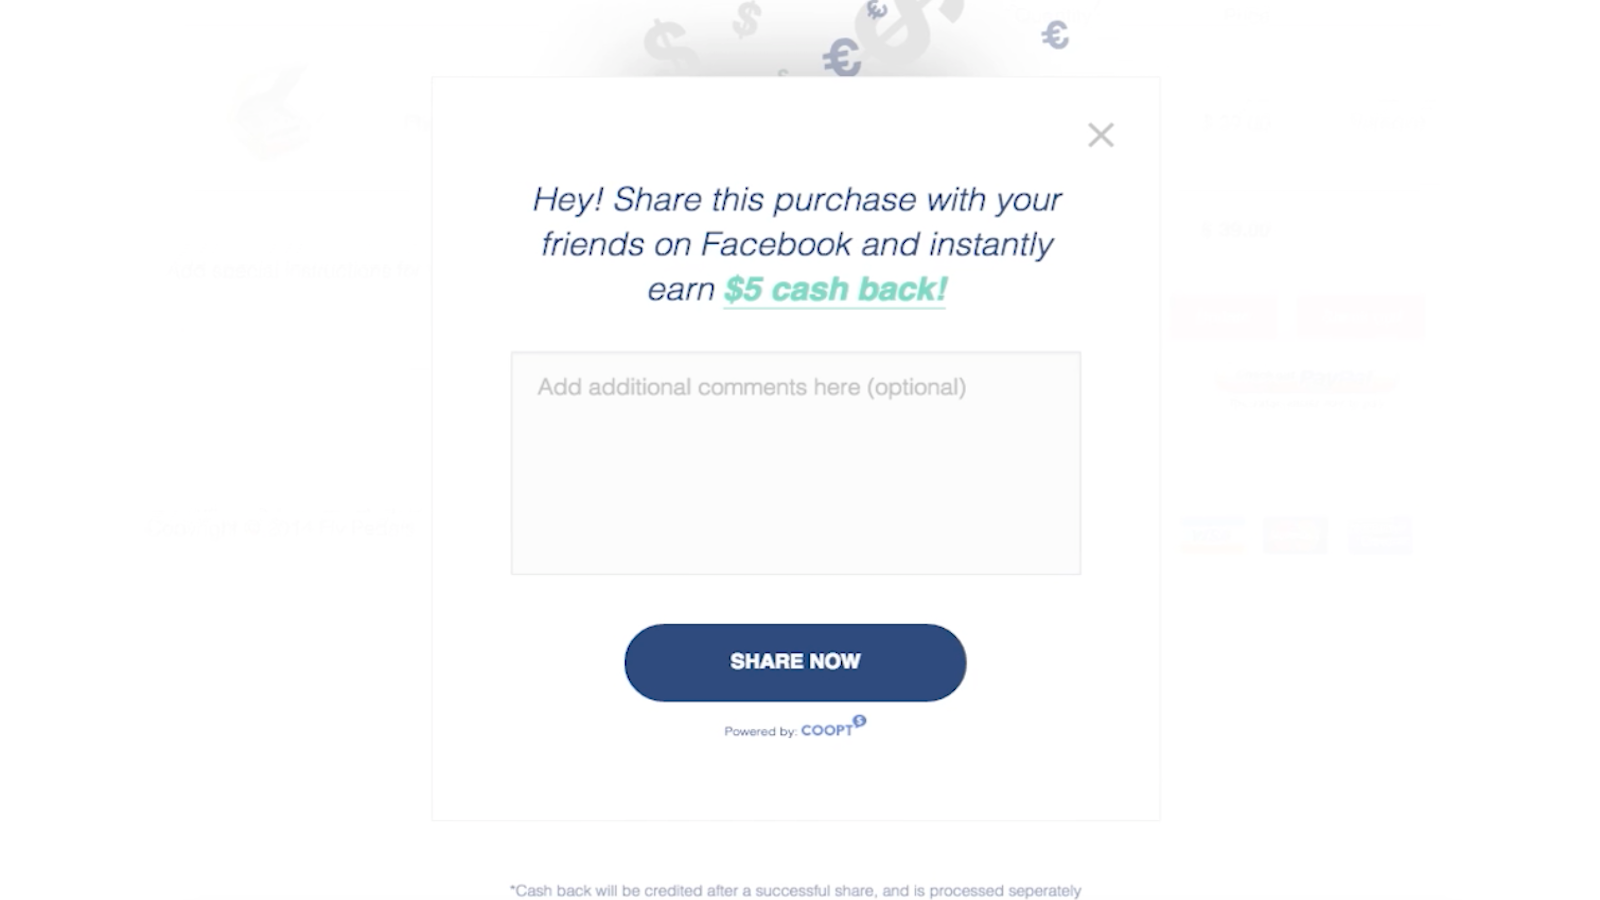 How coopt referrals works